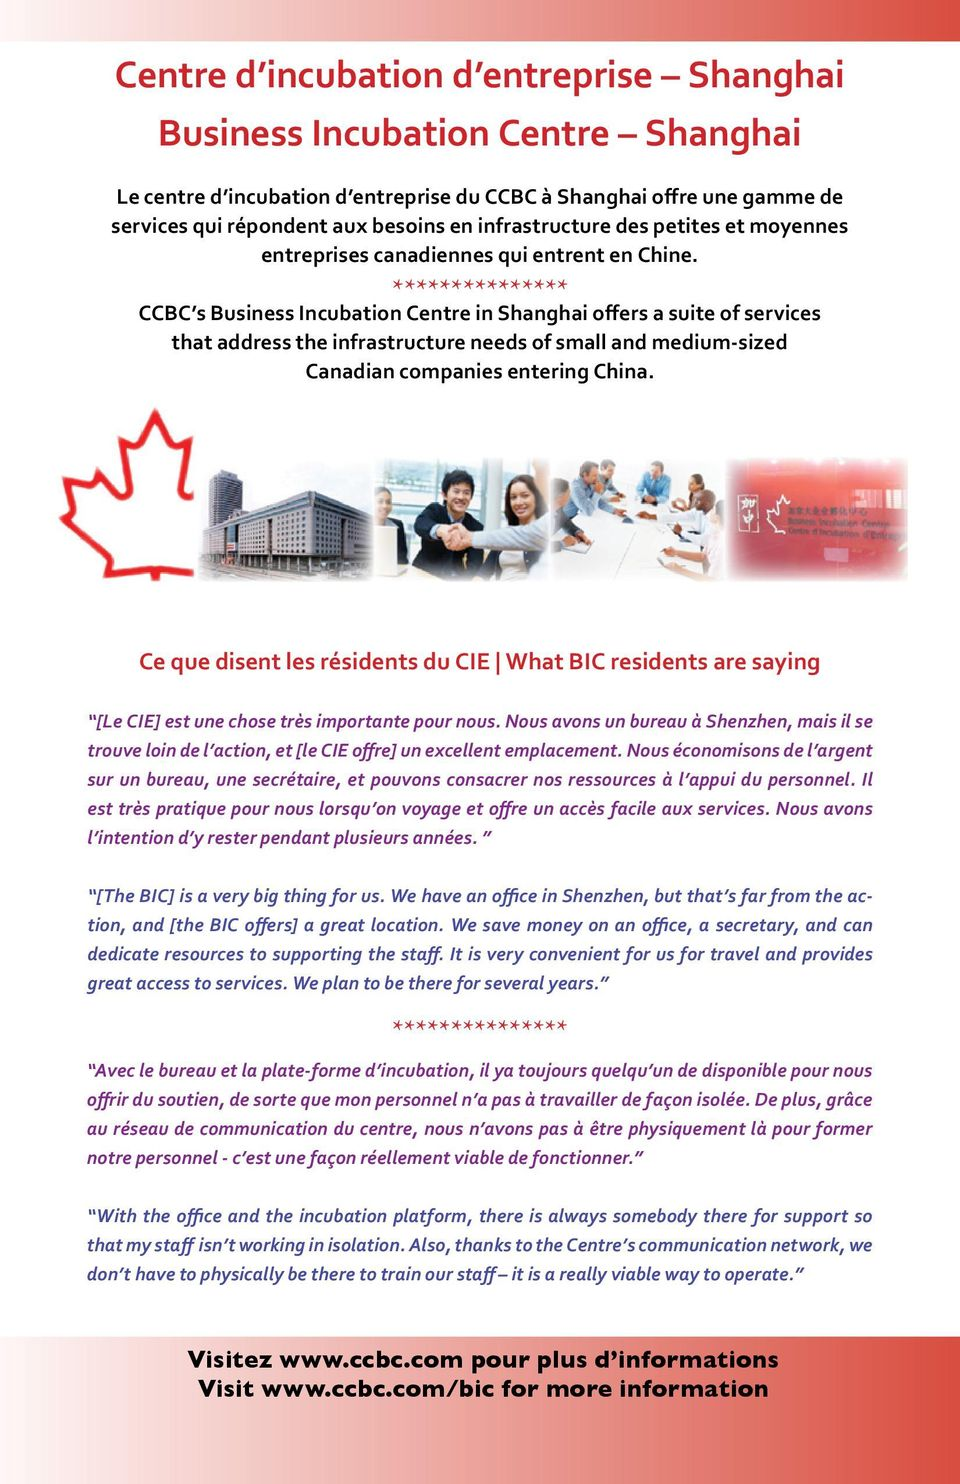 CCBC s Business Incubation Centre in Shanghai offers a suite of services that address the infrastructure needs of small and medium-sized Canadian companies entering China.